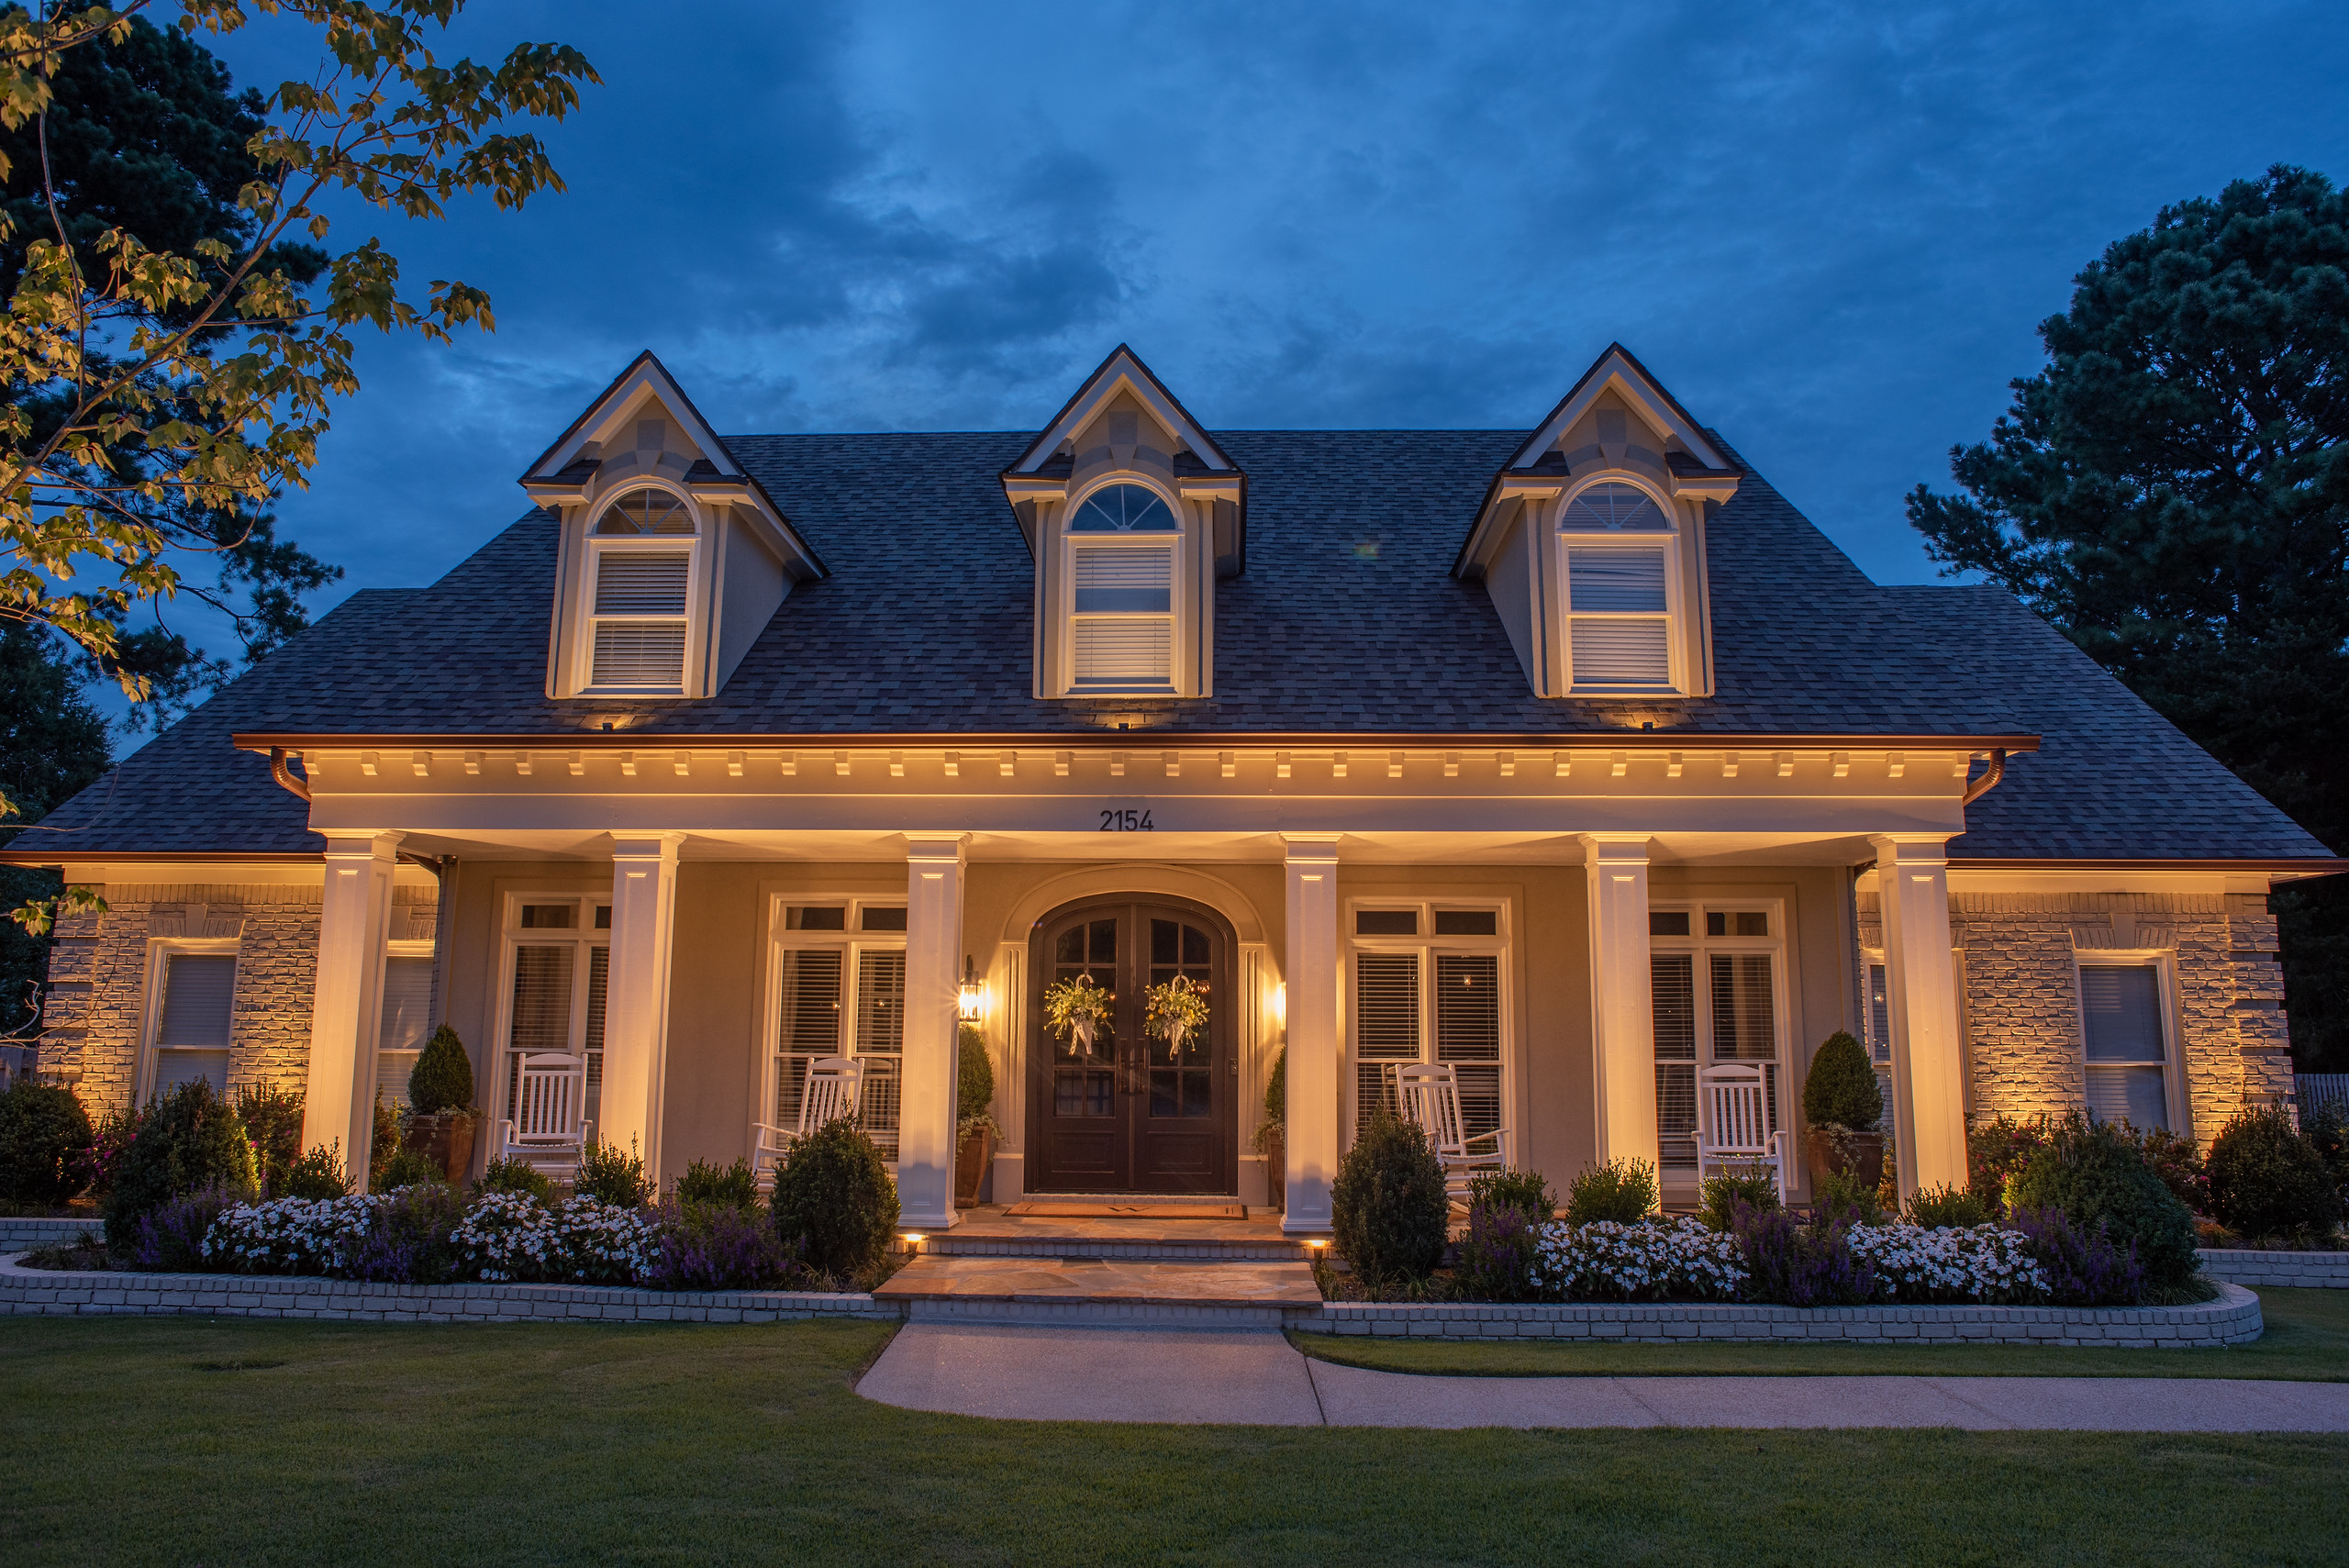 Architectural Lighting on House